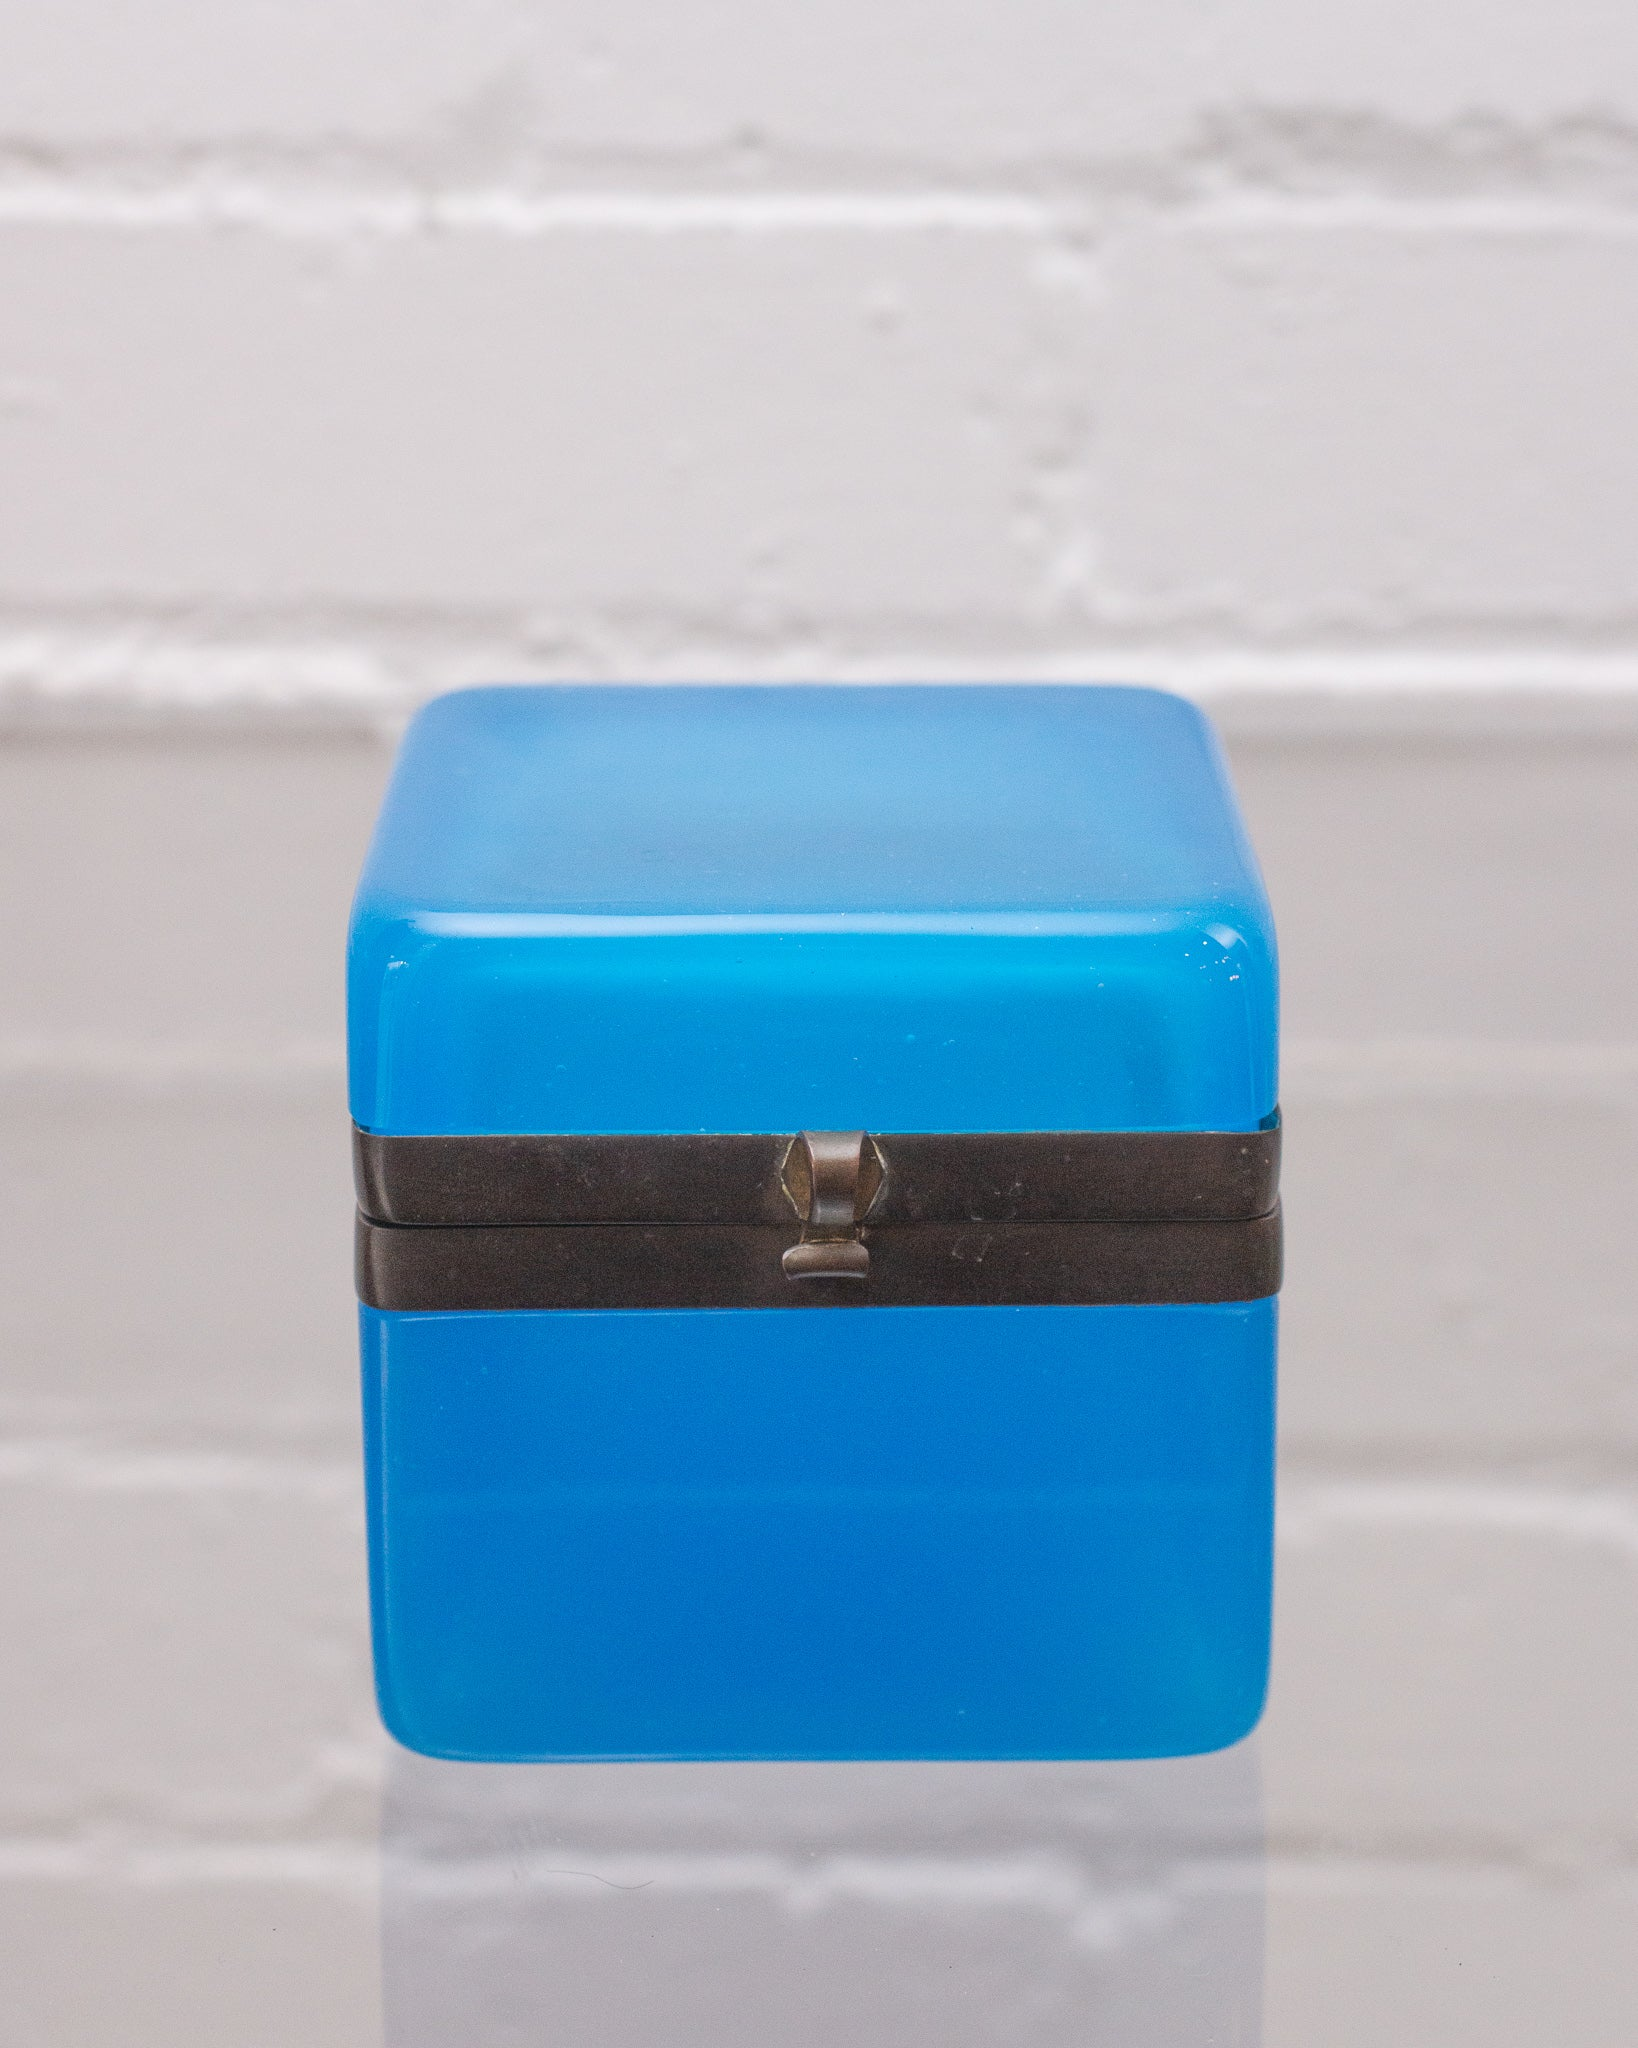 ANTIQUE BLUE OPALINE BOX WITH BRONZE HARDWARE